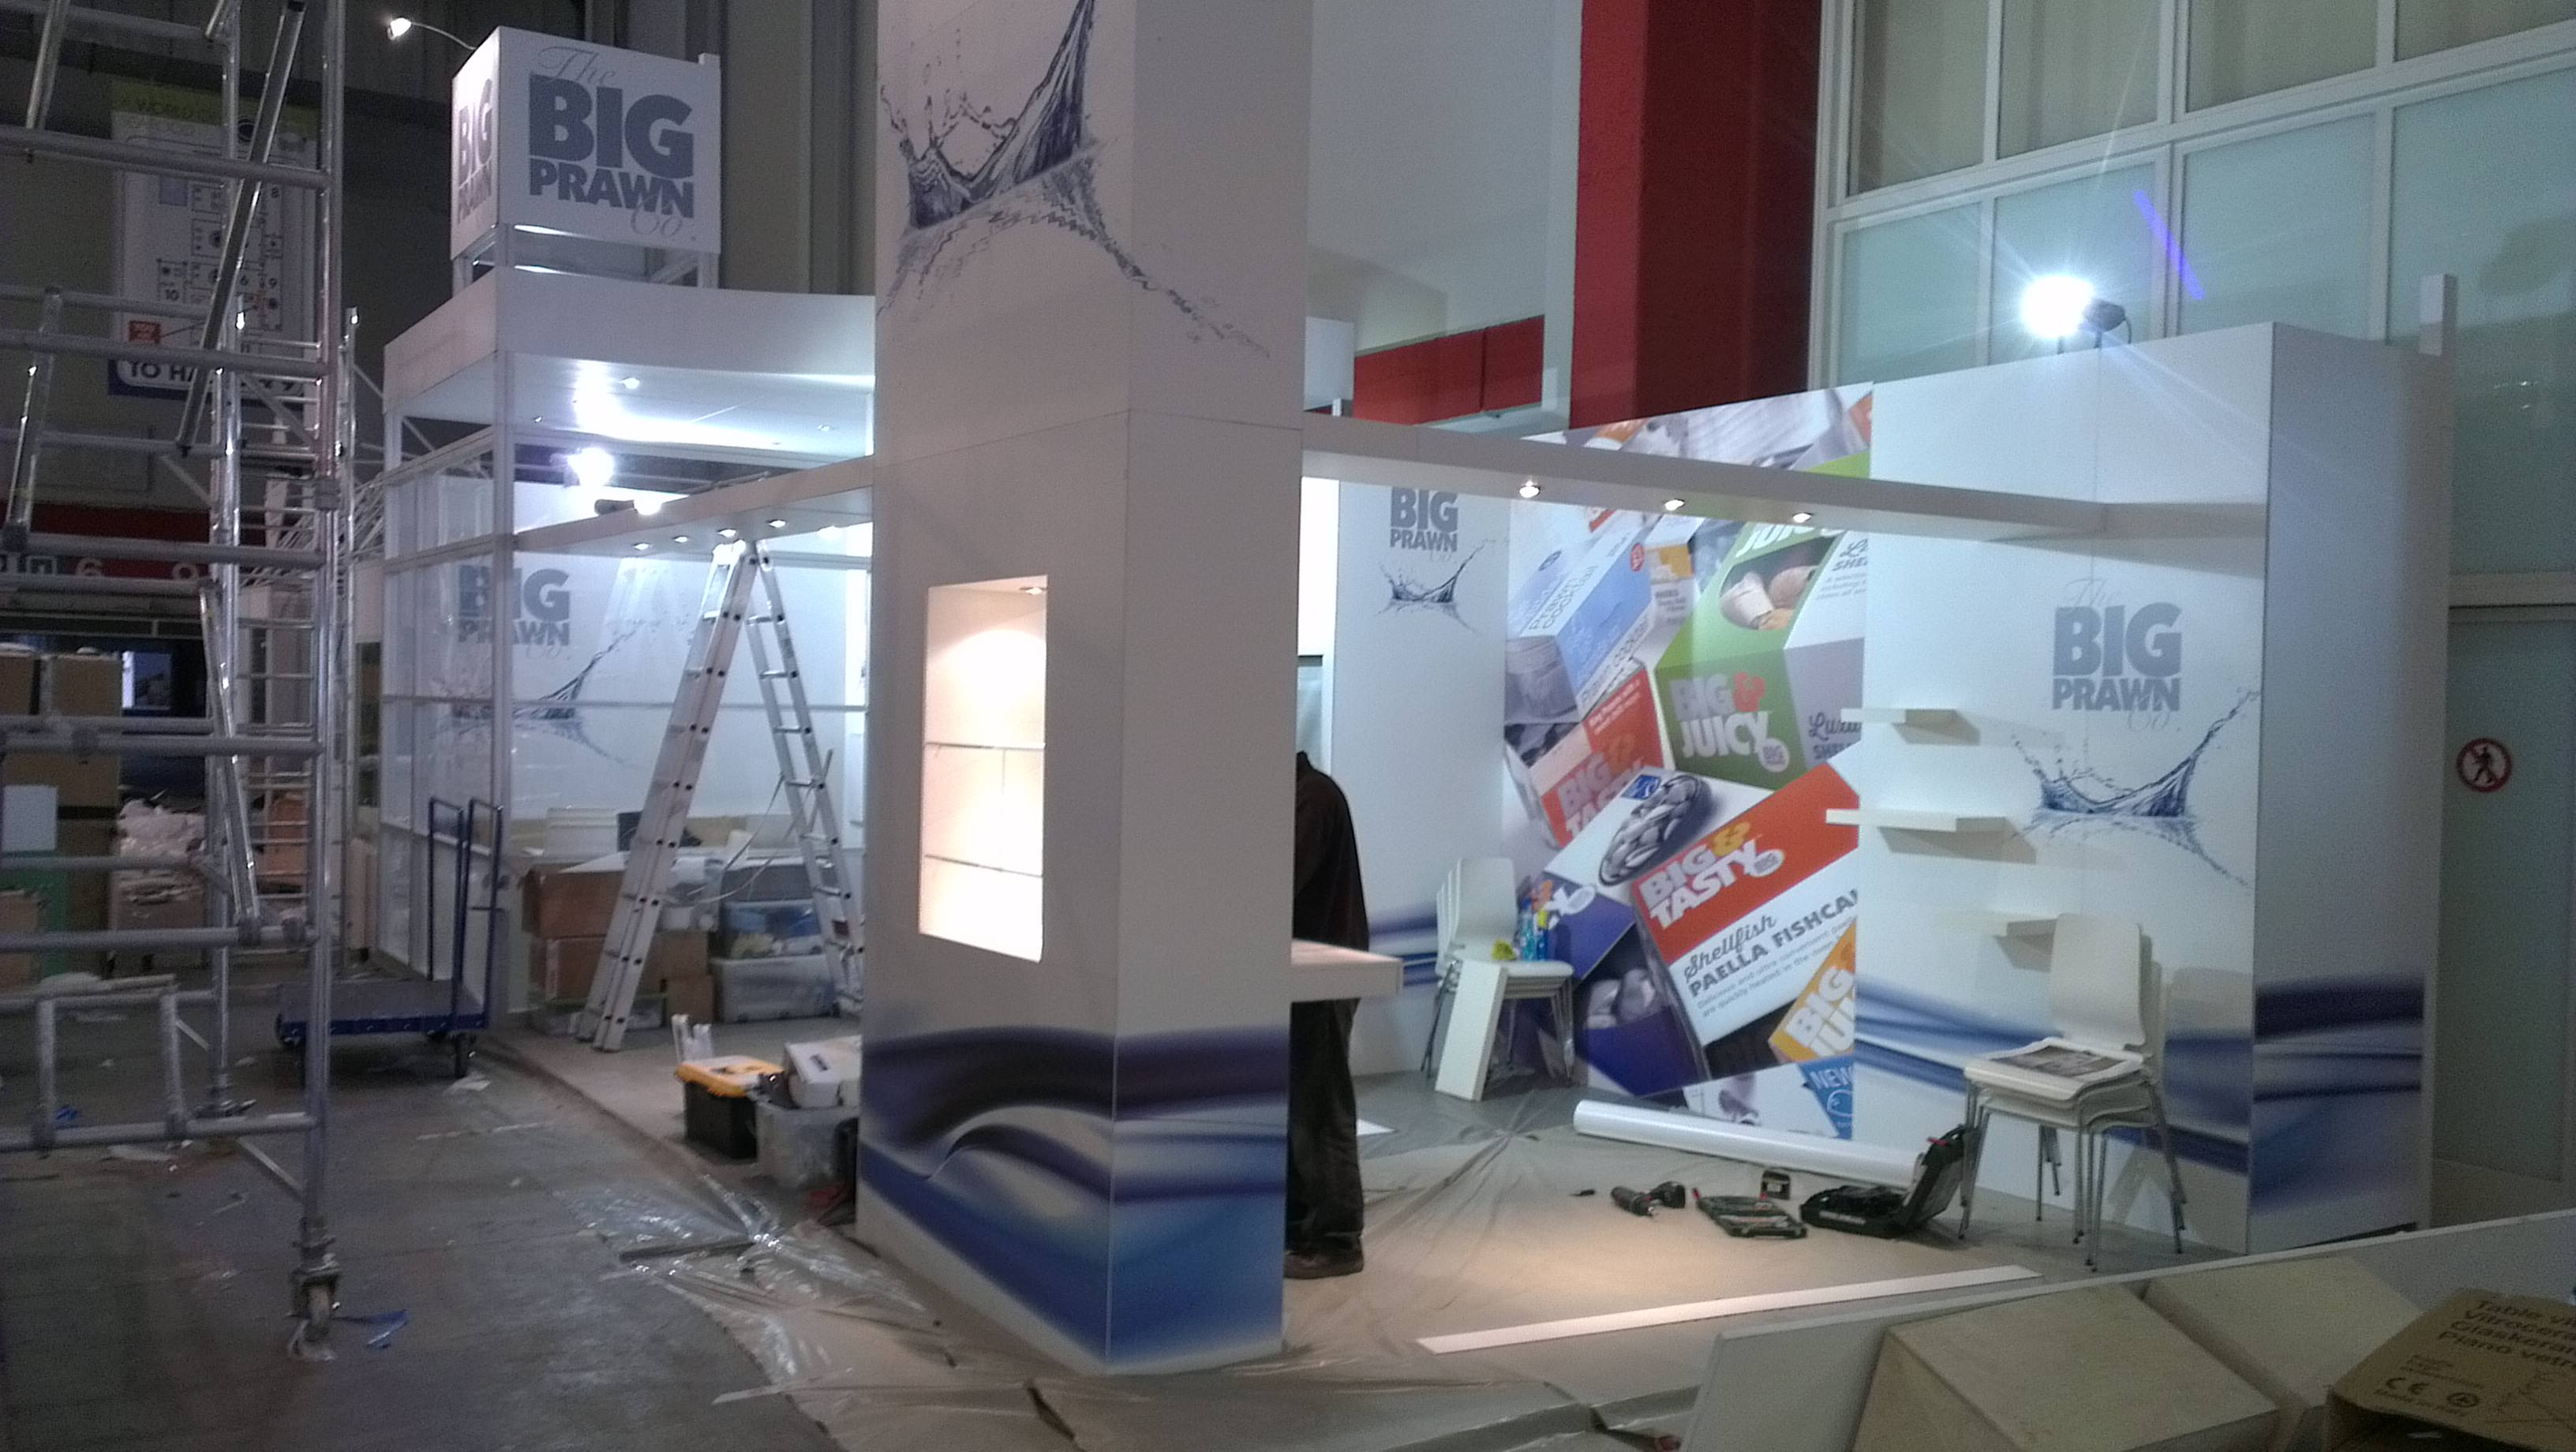 European Exhibition Stand Builders : Big prawn exhibition stand at the european seafood